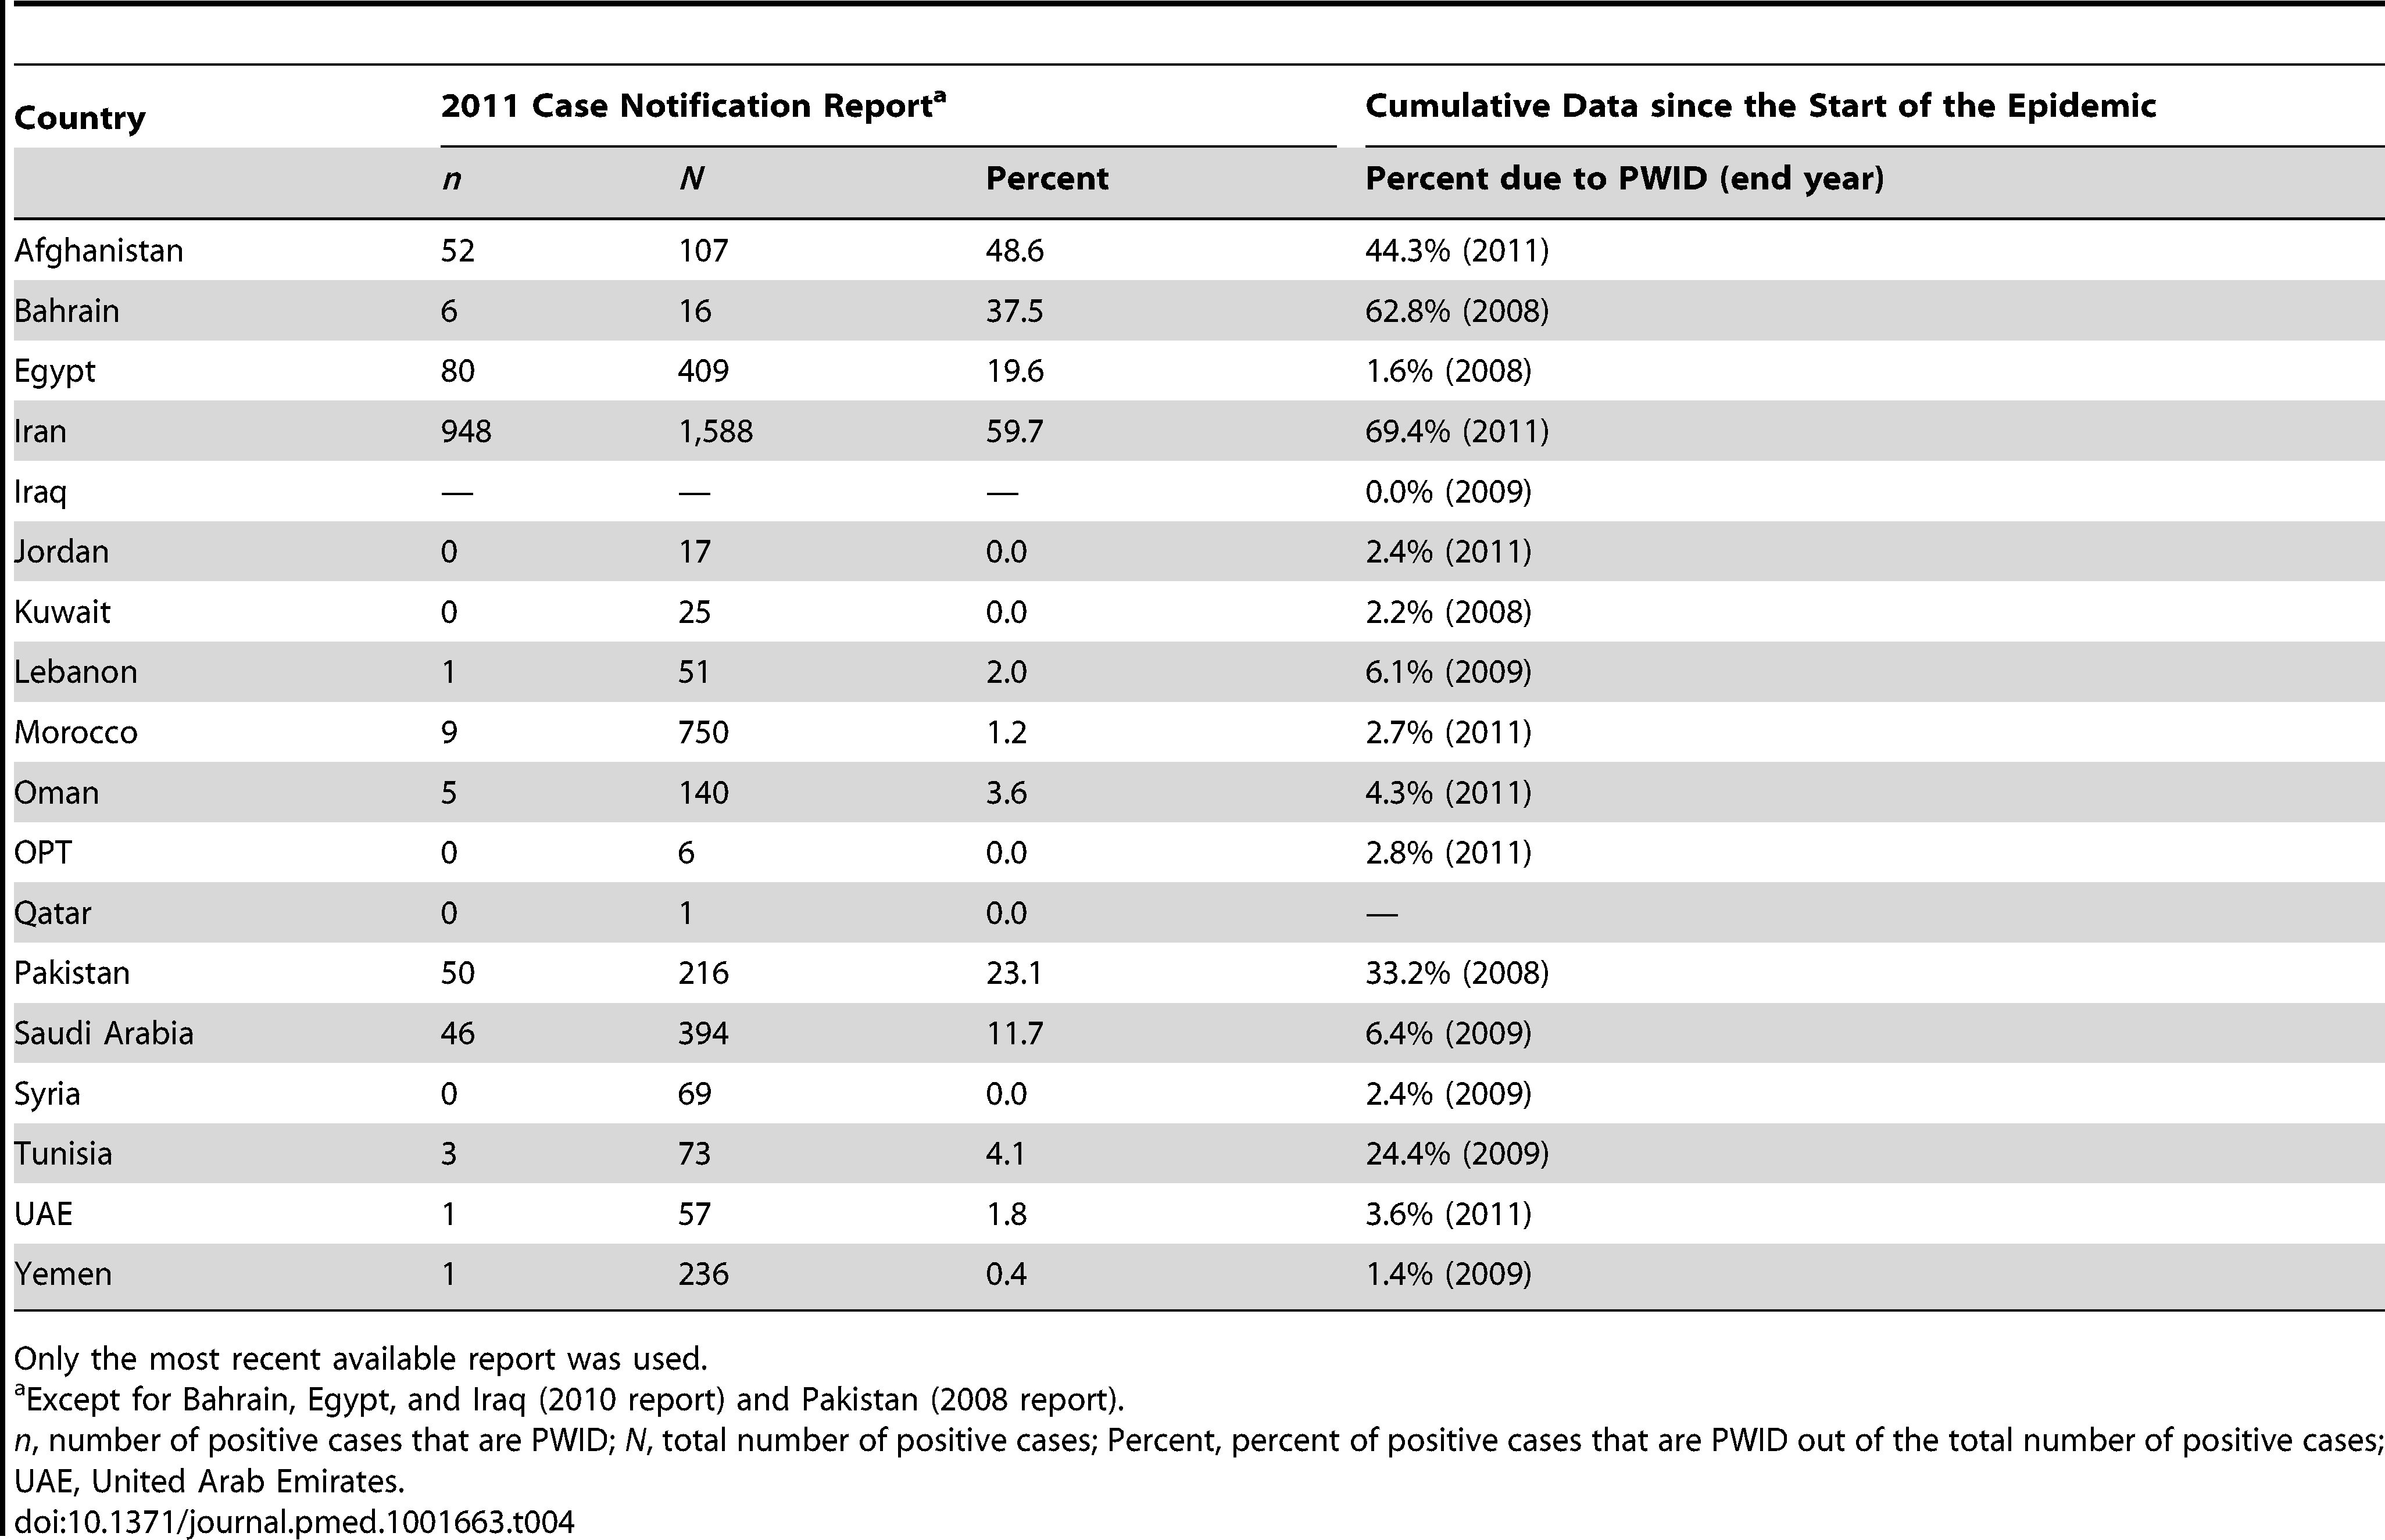 Contribution of injecting drug use as a mode of HIV transmission to the total HIV/AIDS cases by country as per various studies/reports and countries' case notification reports <em class=&quot;ref&quot;>[126]</em>,<em class=&quot;ref&quot;>[190]</em>.